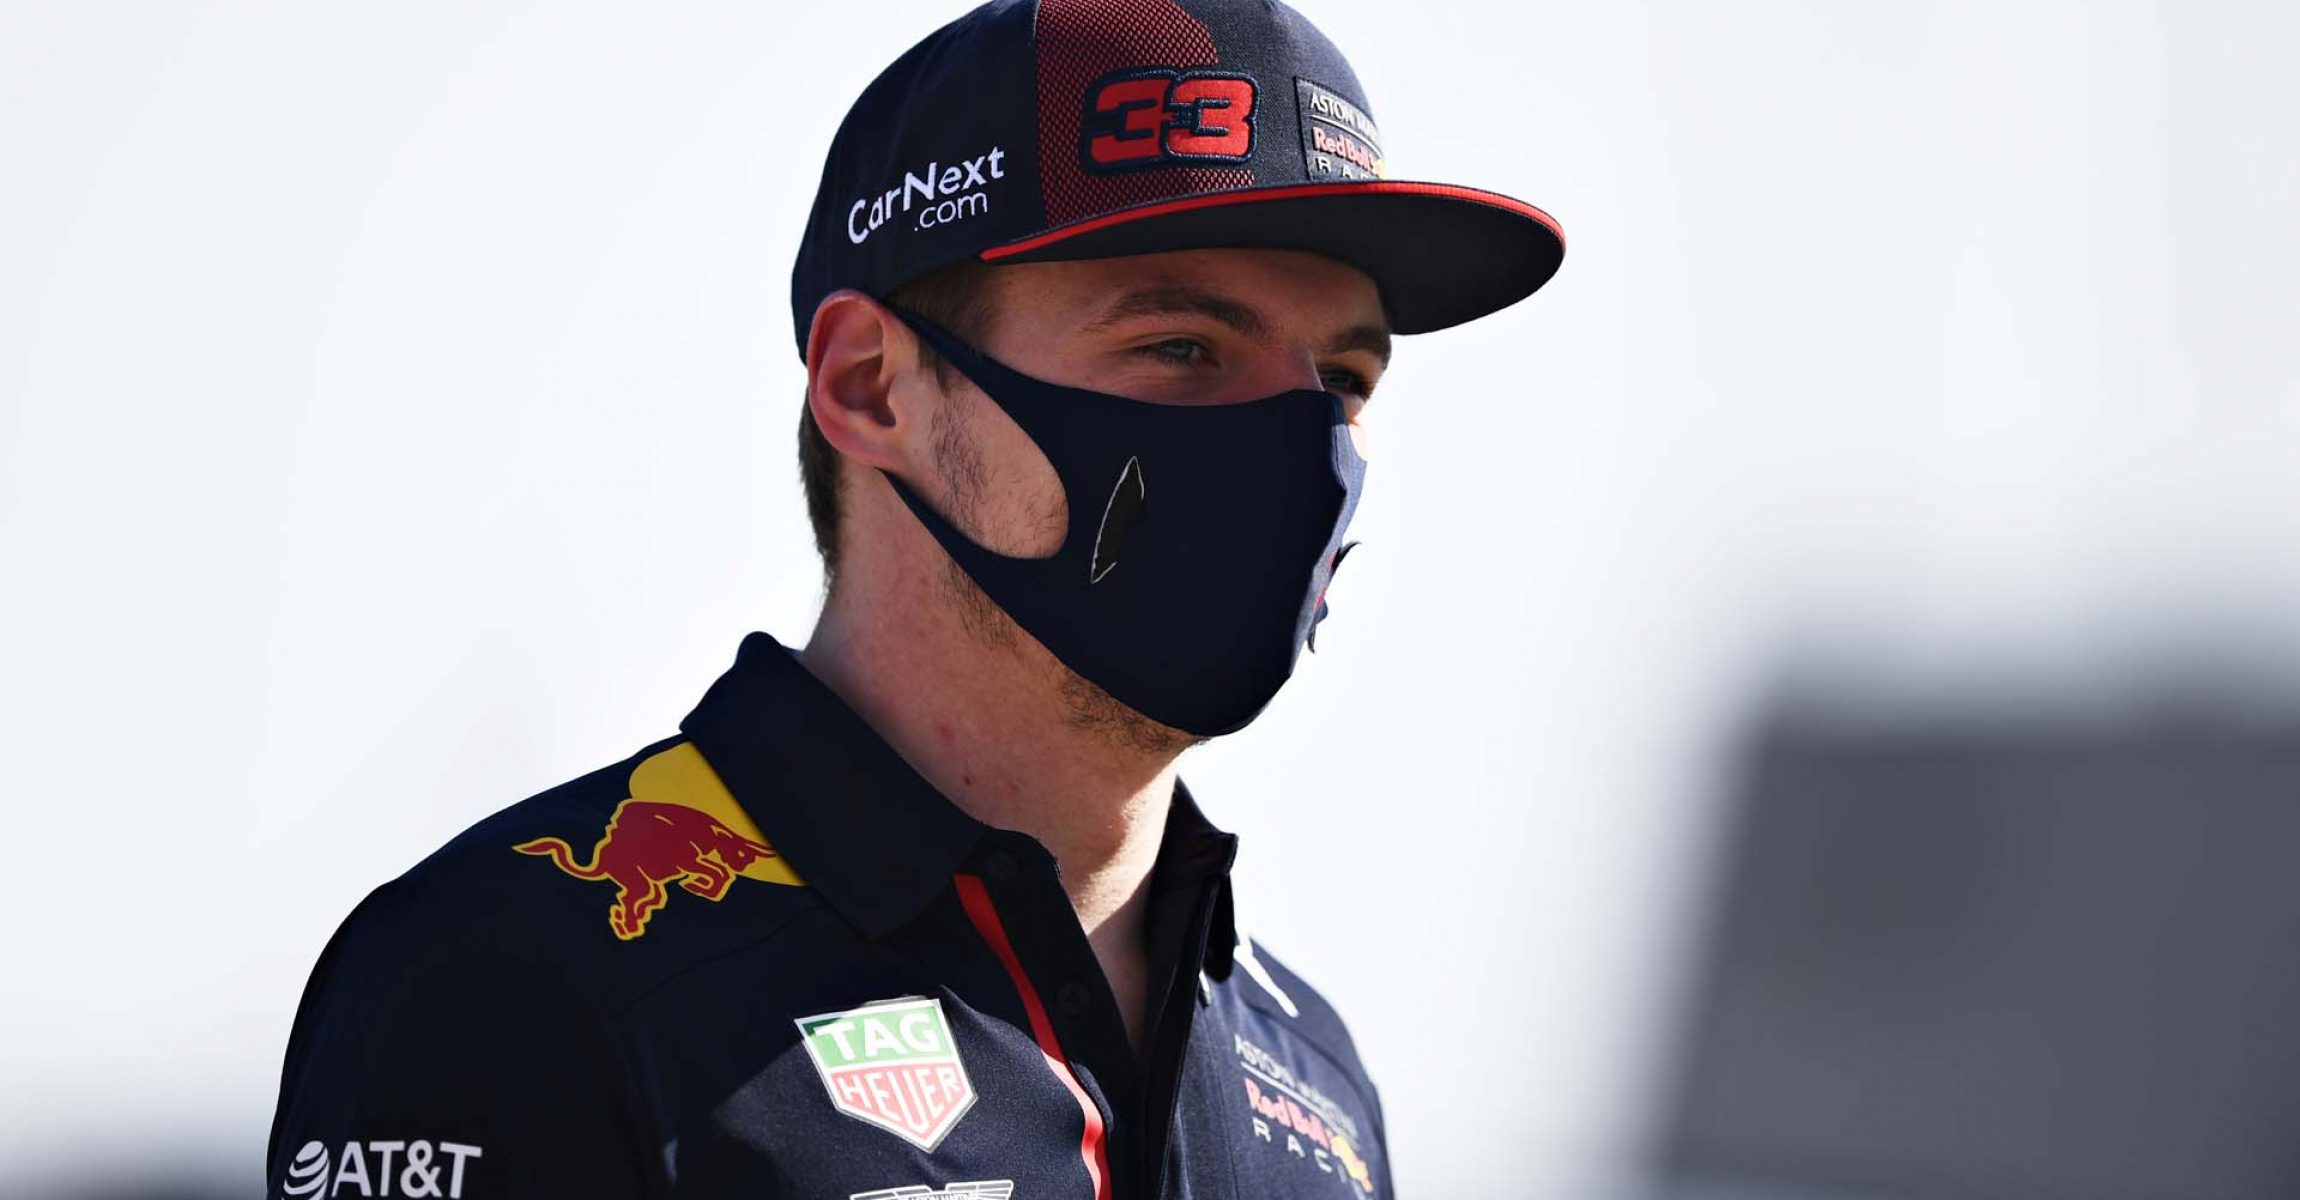 BAHRAIN, BAHRAIN - NOVEMBER 26: Max Verstappen of Netherlands and Red Bull Racing walks in the Paddock during previews ahead of the F1 Grand Prix of Bahrain at Bahrain International Circuit on November 26, 2020 in Bahrain, Bahrain. (Photo by Rudy Carezzevoli/Getty Images)